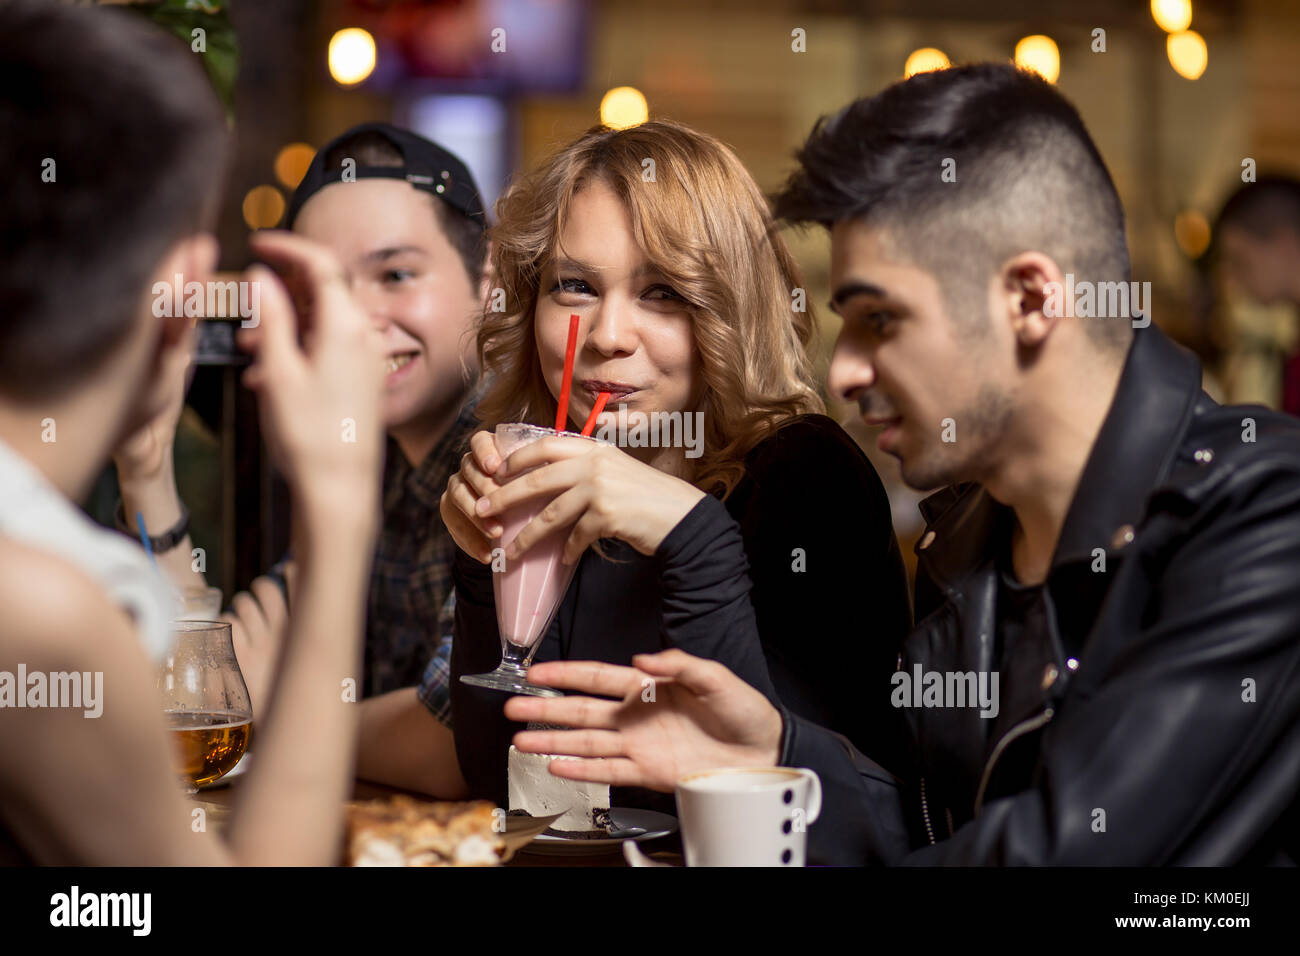 Young woman drinking milkshake while sitting with friends at cafe - Stock Image